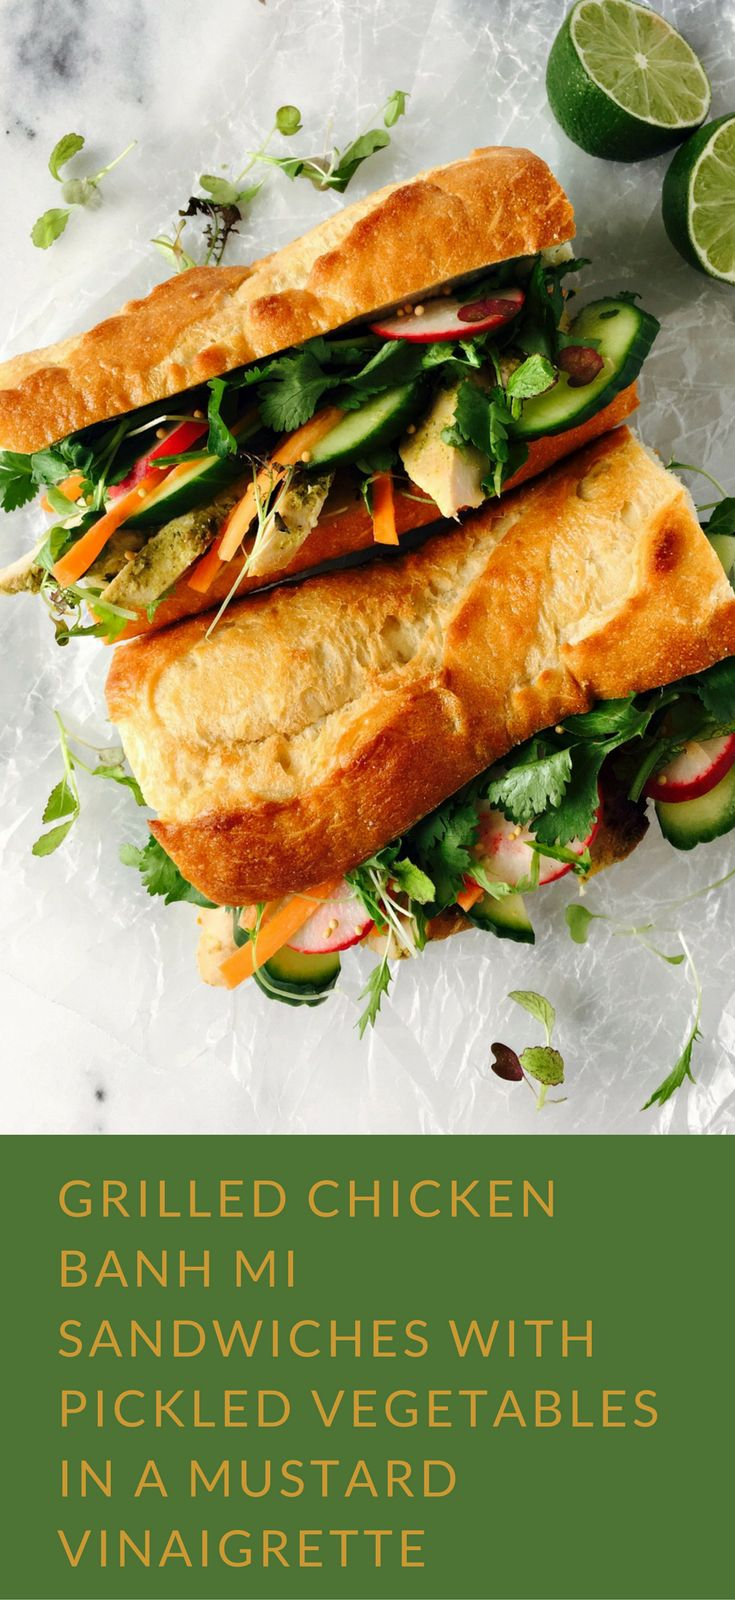 Grilled Chicken Banh Mi Sandwiches with Pickled Vegetables in a Mustard Vinaigrette | #MyMustard